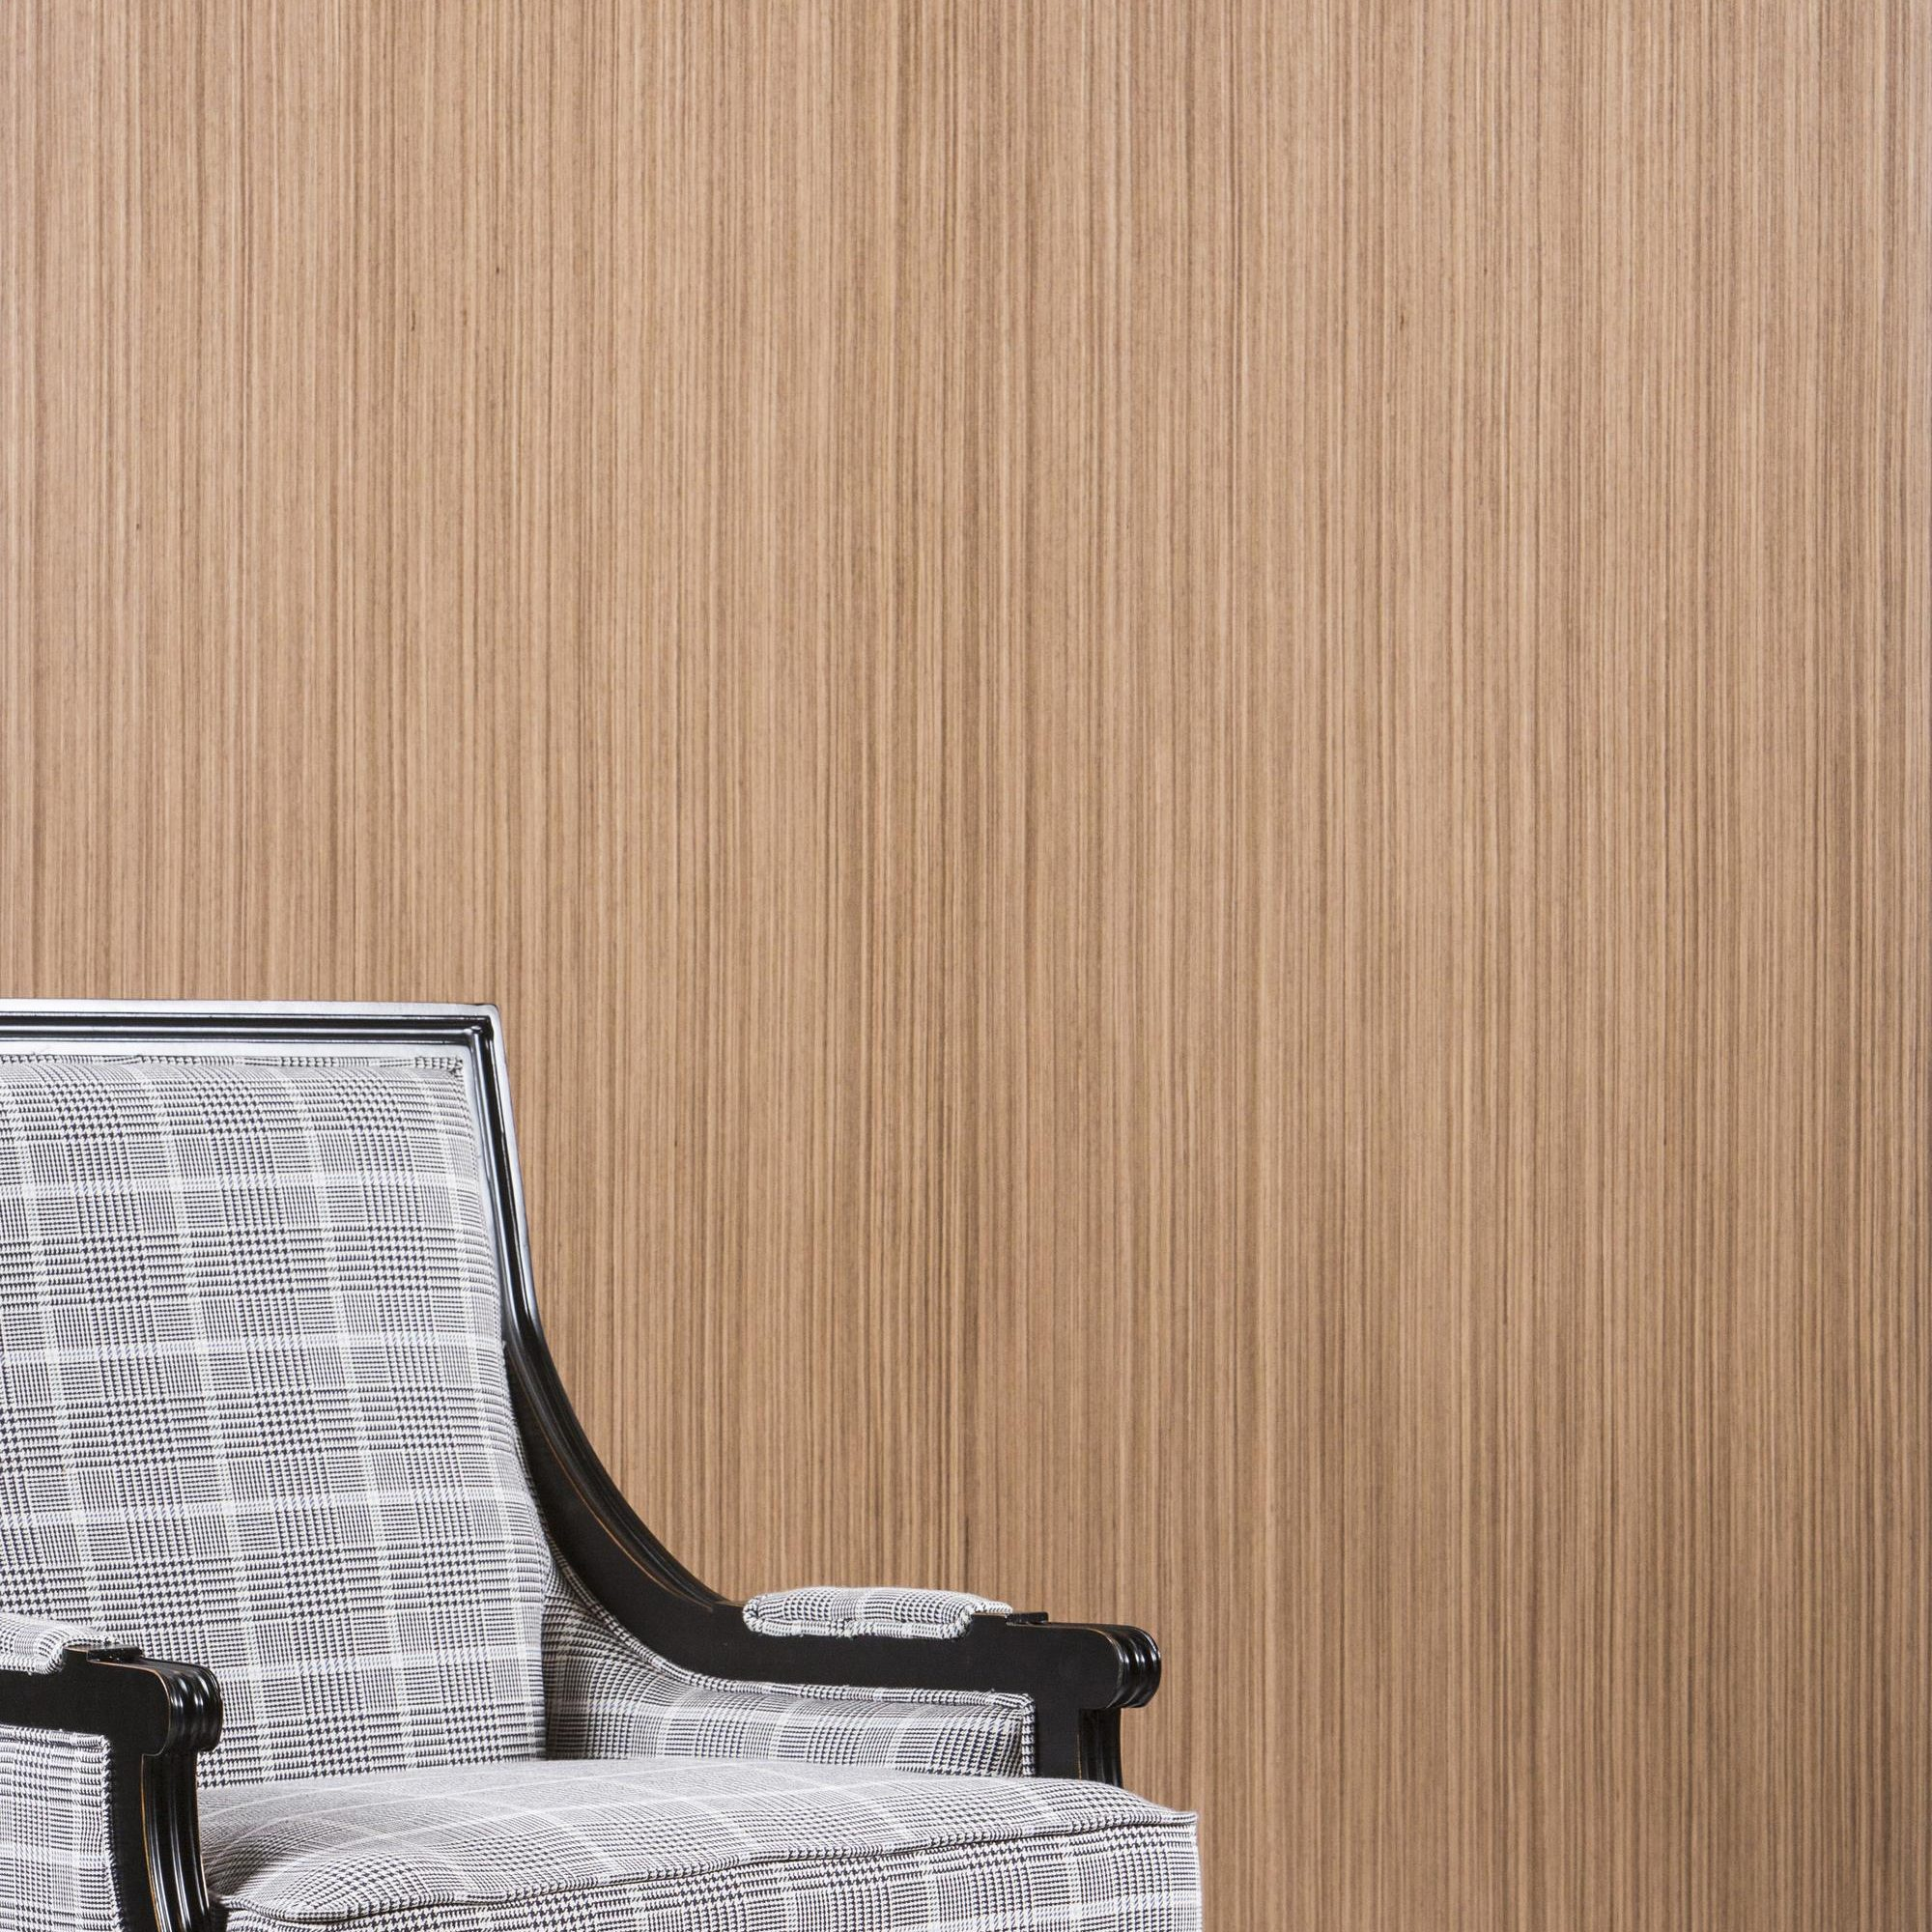 White Chair Wood Panel Wall